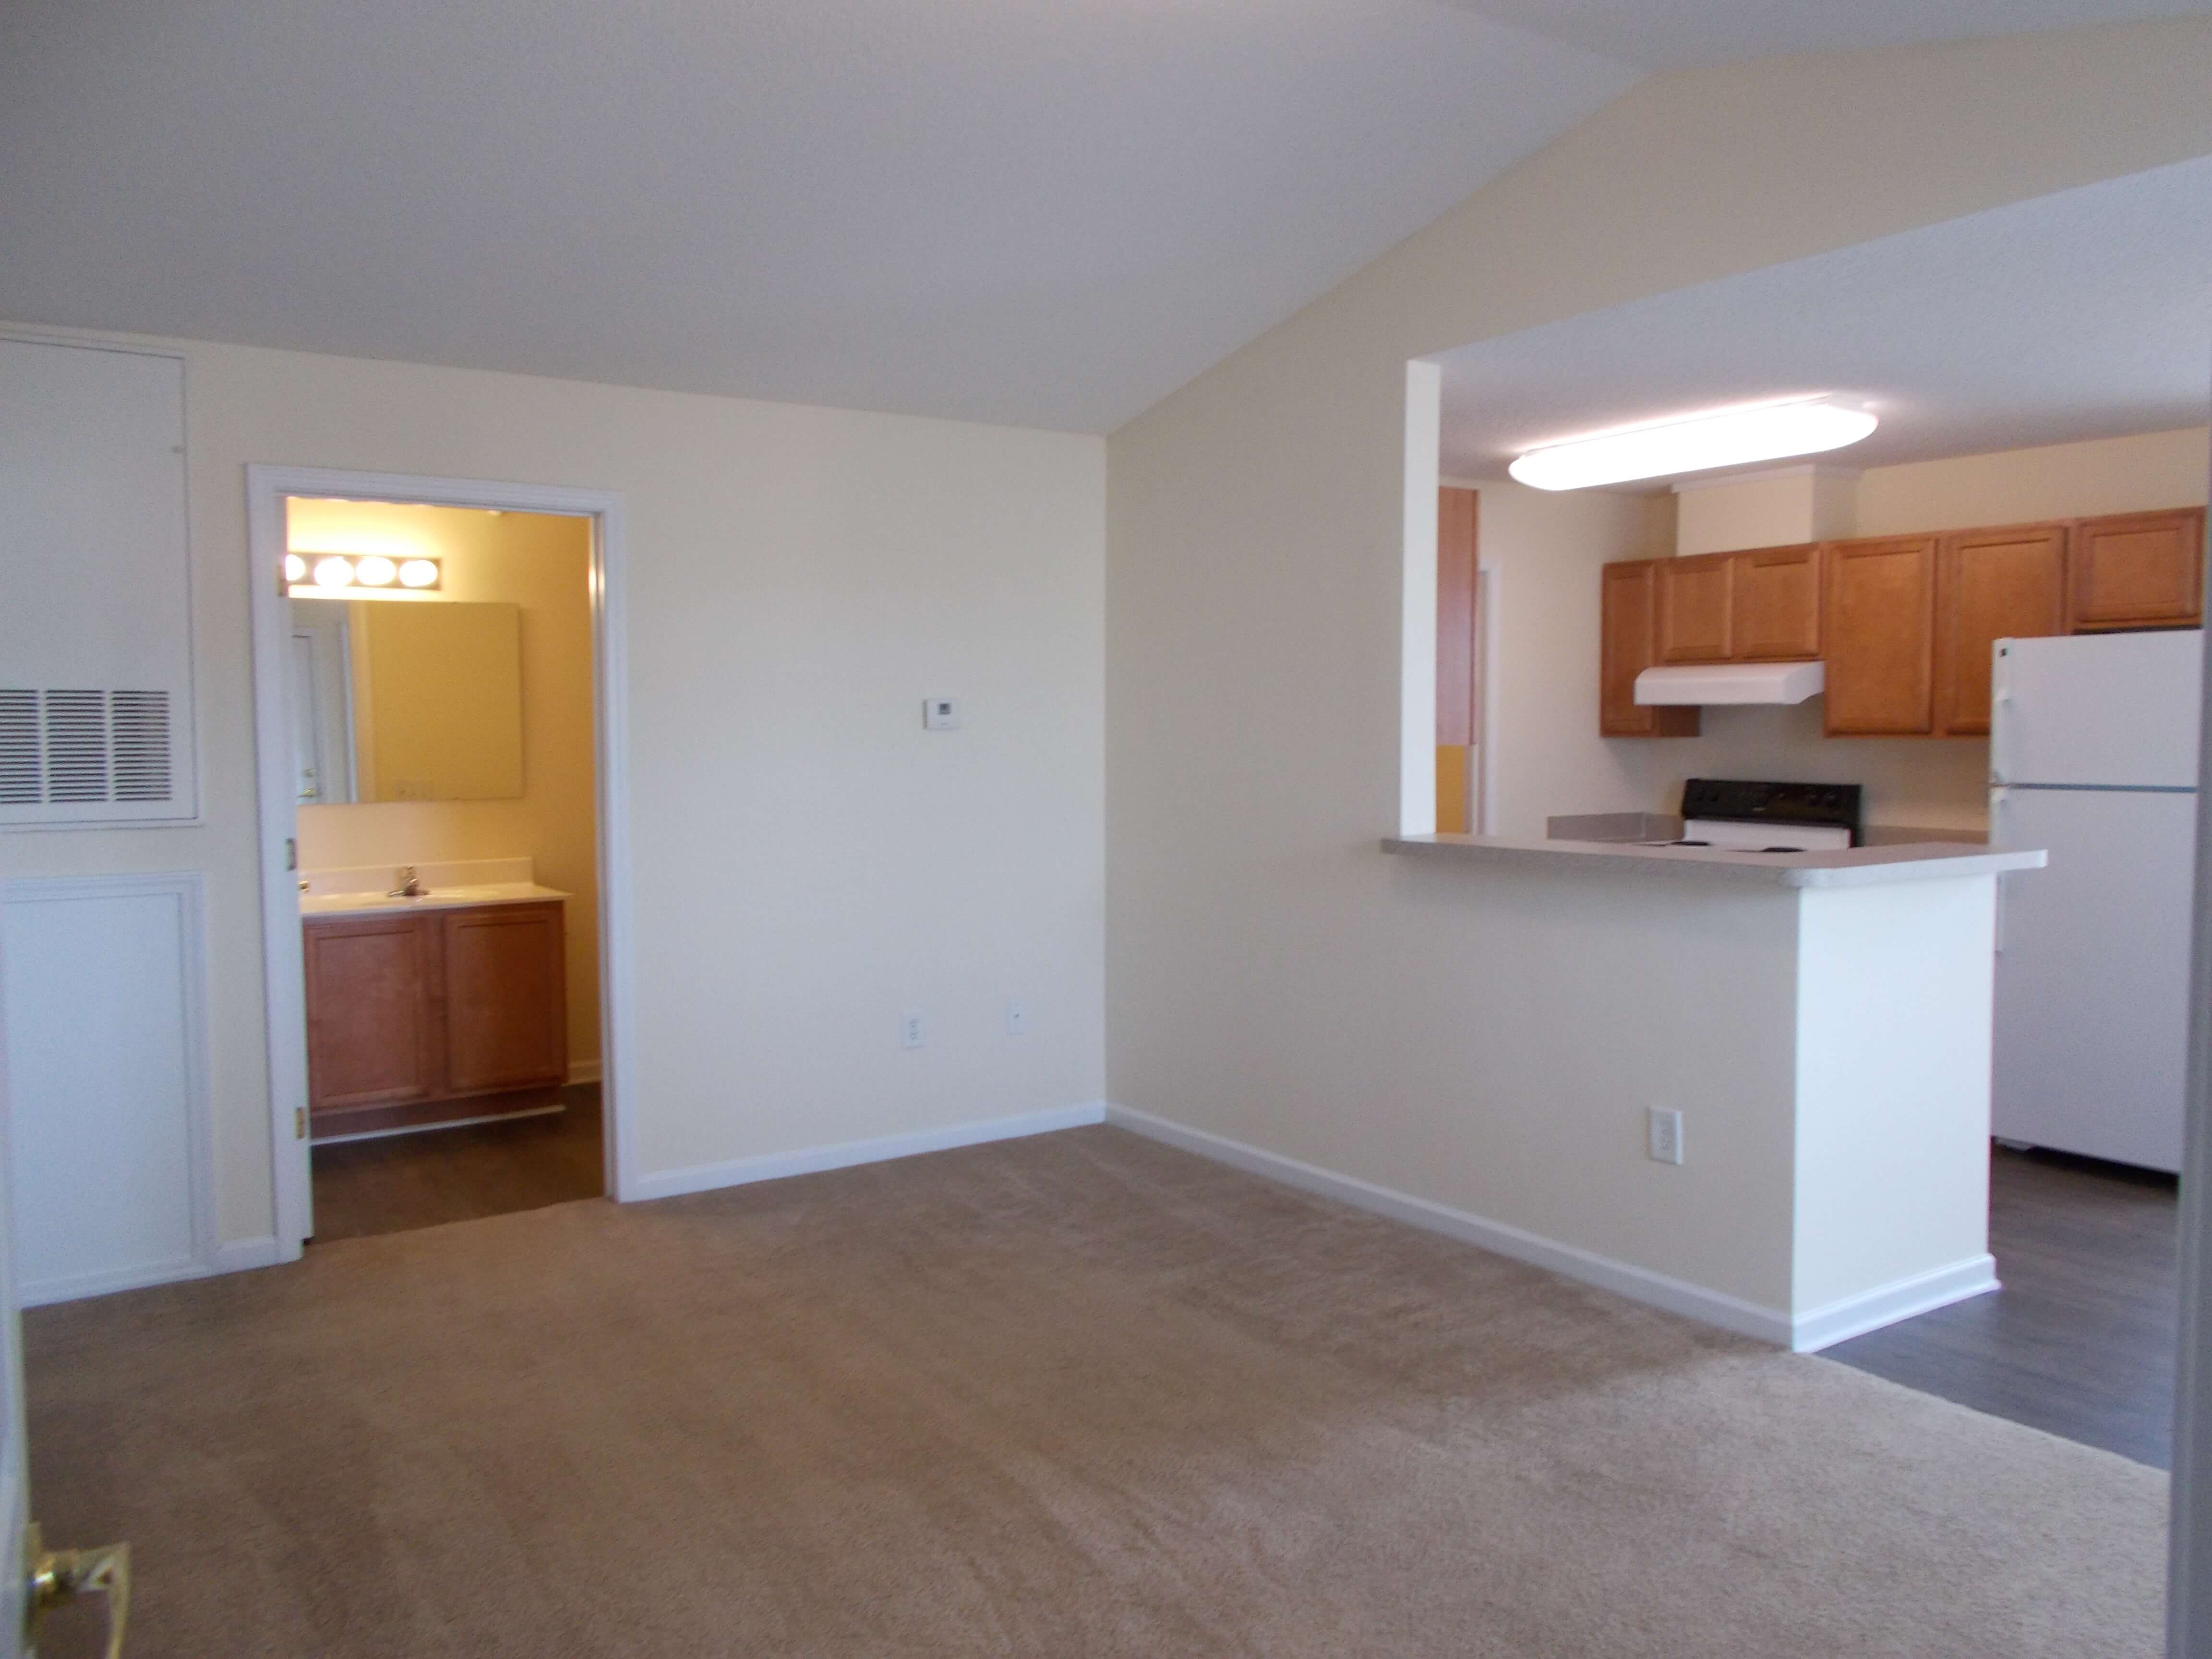 Charleston place apartments 400 charleston lane - 1 bedroom apartments in jacksonville nc ...